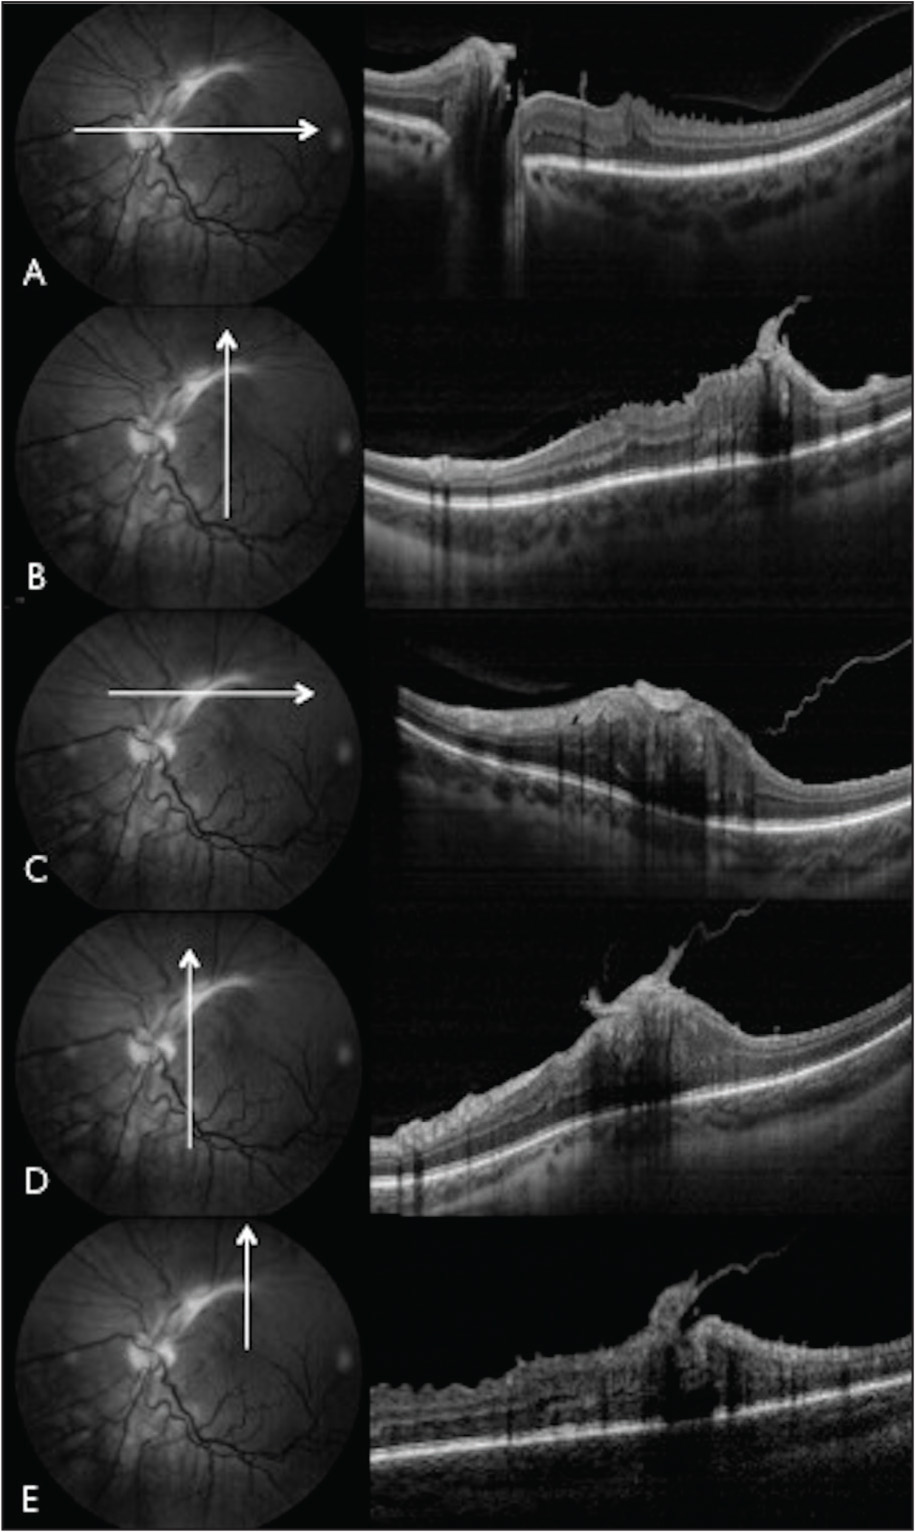 Spectral-domain enhanced depth imaging optical coherence tomography of combined hamartoma. (A) Horizontal cut through inferior margin of lesion near the optic disc, showing classic mini-peak sawtooth patterns, with vitreoretinal adhesion. (B) Vertical cut through temporal portion of lesion, showing vitreoretinal traction with mini-peak sawtooth pattern, and one focus of dense preretinal fibrosis with retinal folding. (C) Horizontal cut through midportion of lesion, demonstrating dense flat epiretinal fibrosis with maxi-peak retinal folding involving all retinal layers. (D) Vertical cut through midportion of lesion, demonstrating dense flat epiretinal fibrosis with maxi-peak retinal folding and deep shadowing. (E) Vertical cut at temporal edge of lesion, showing dense focus of epiretinal fibrosis with both mini-peak (inferior edge) and maxi-peak (midportion) changes with outer retinal edema.